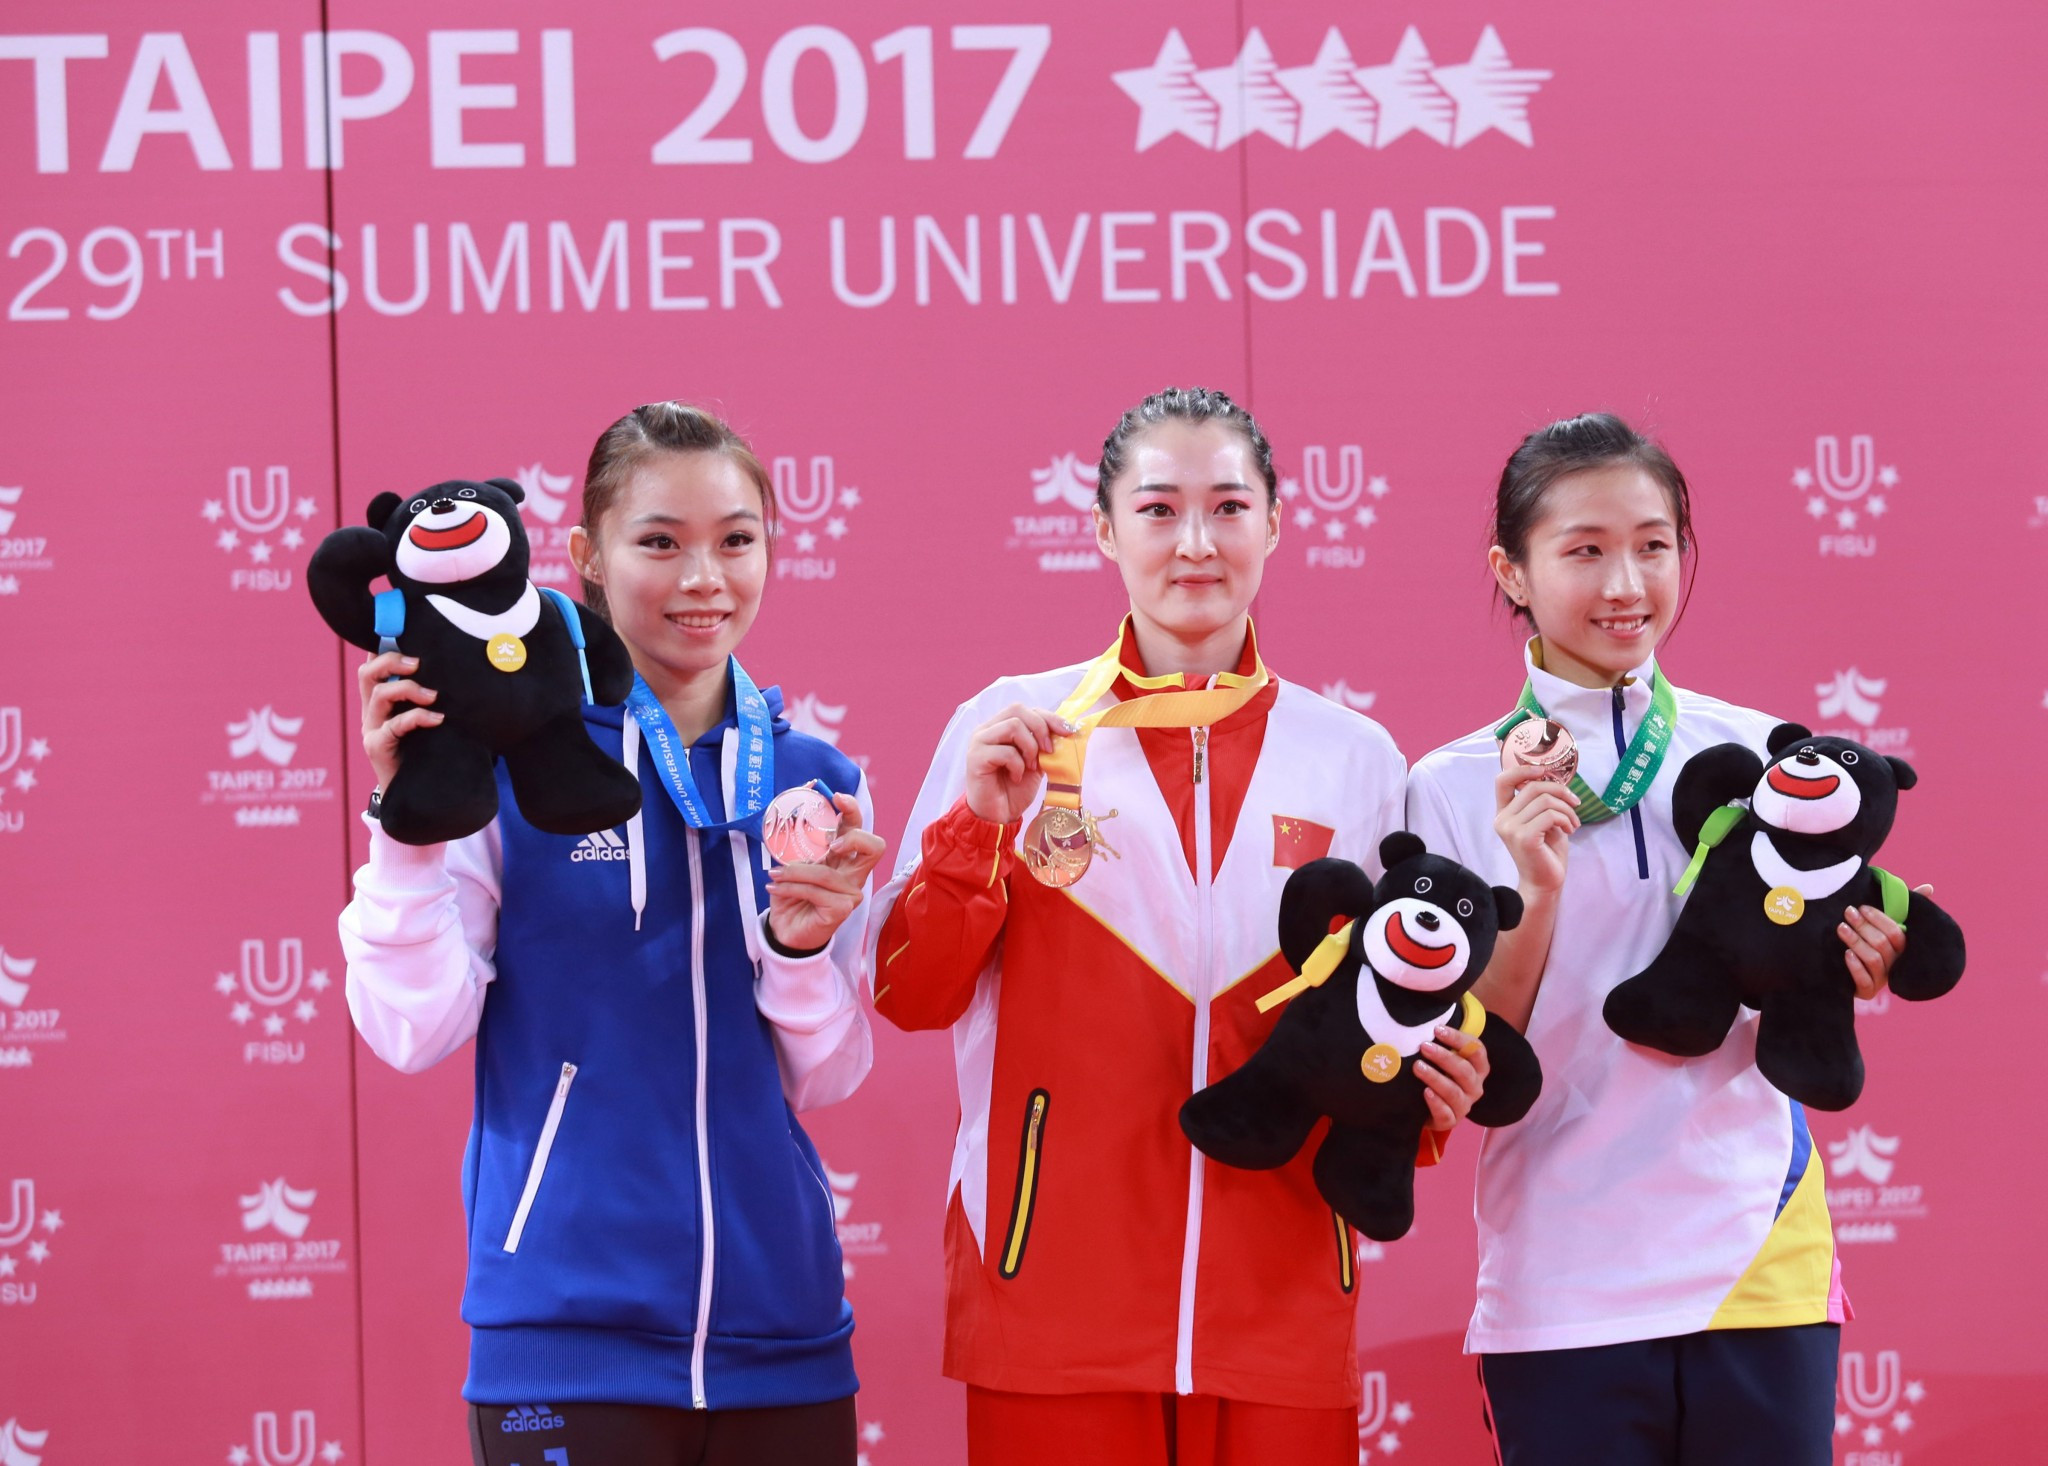 China won the two wushu gold medals on offer ©Taipei 2017